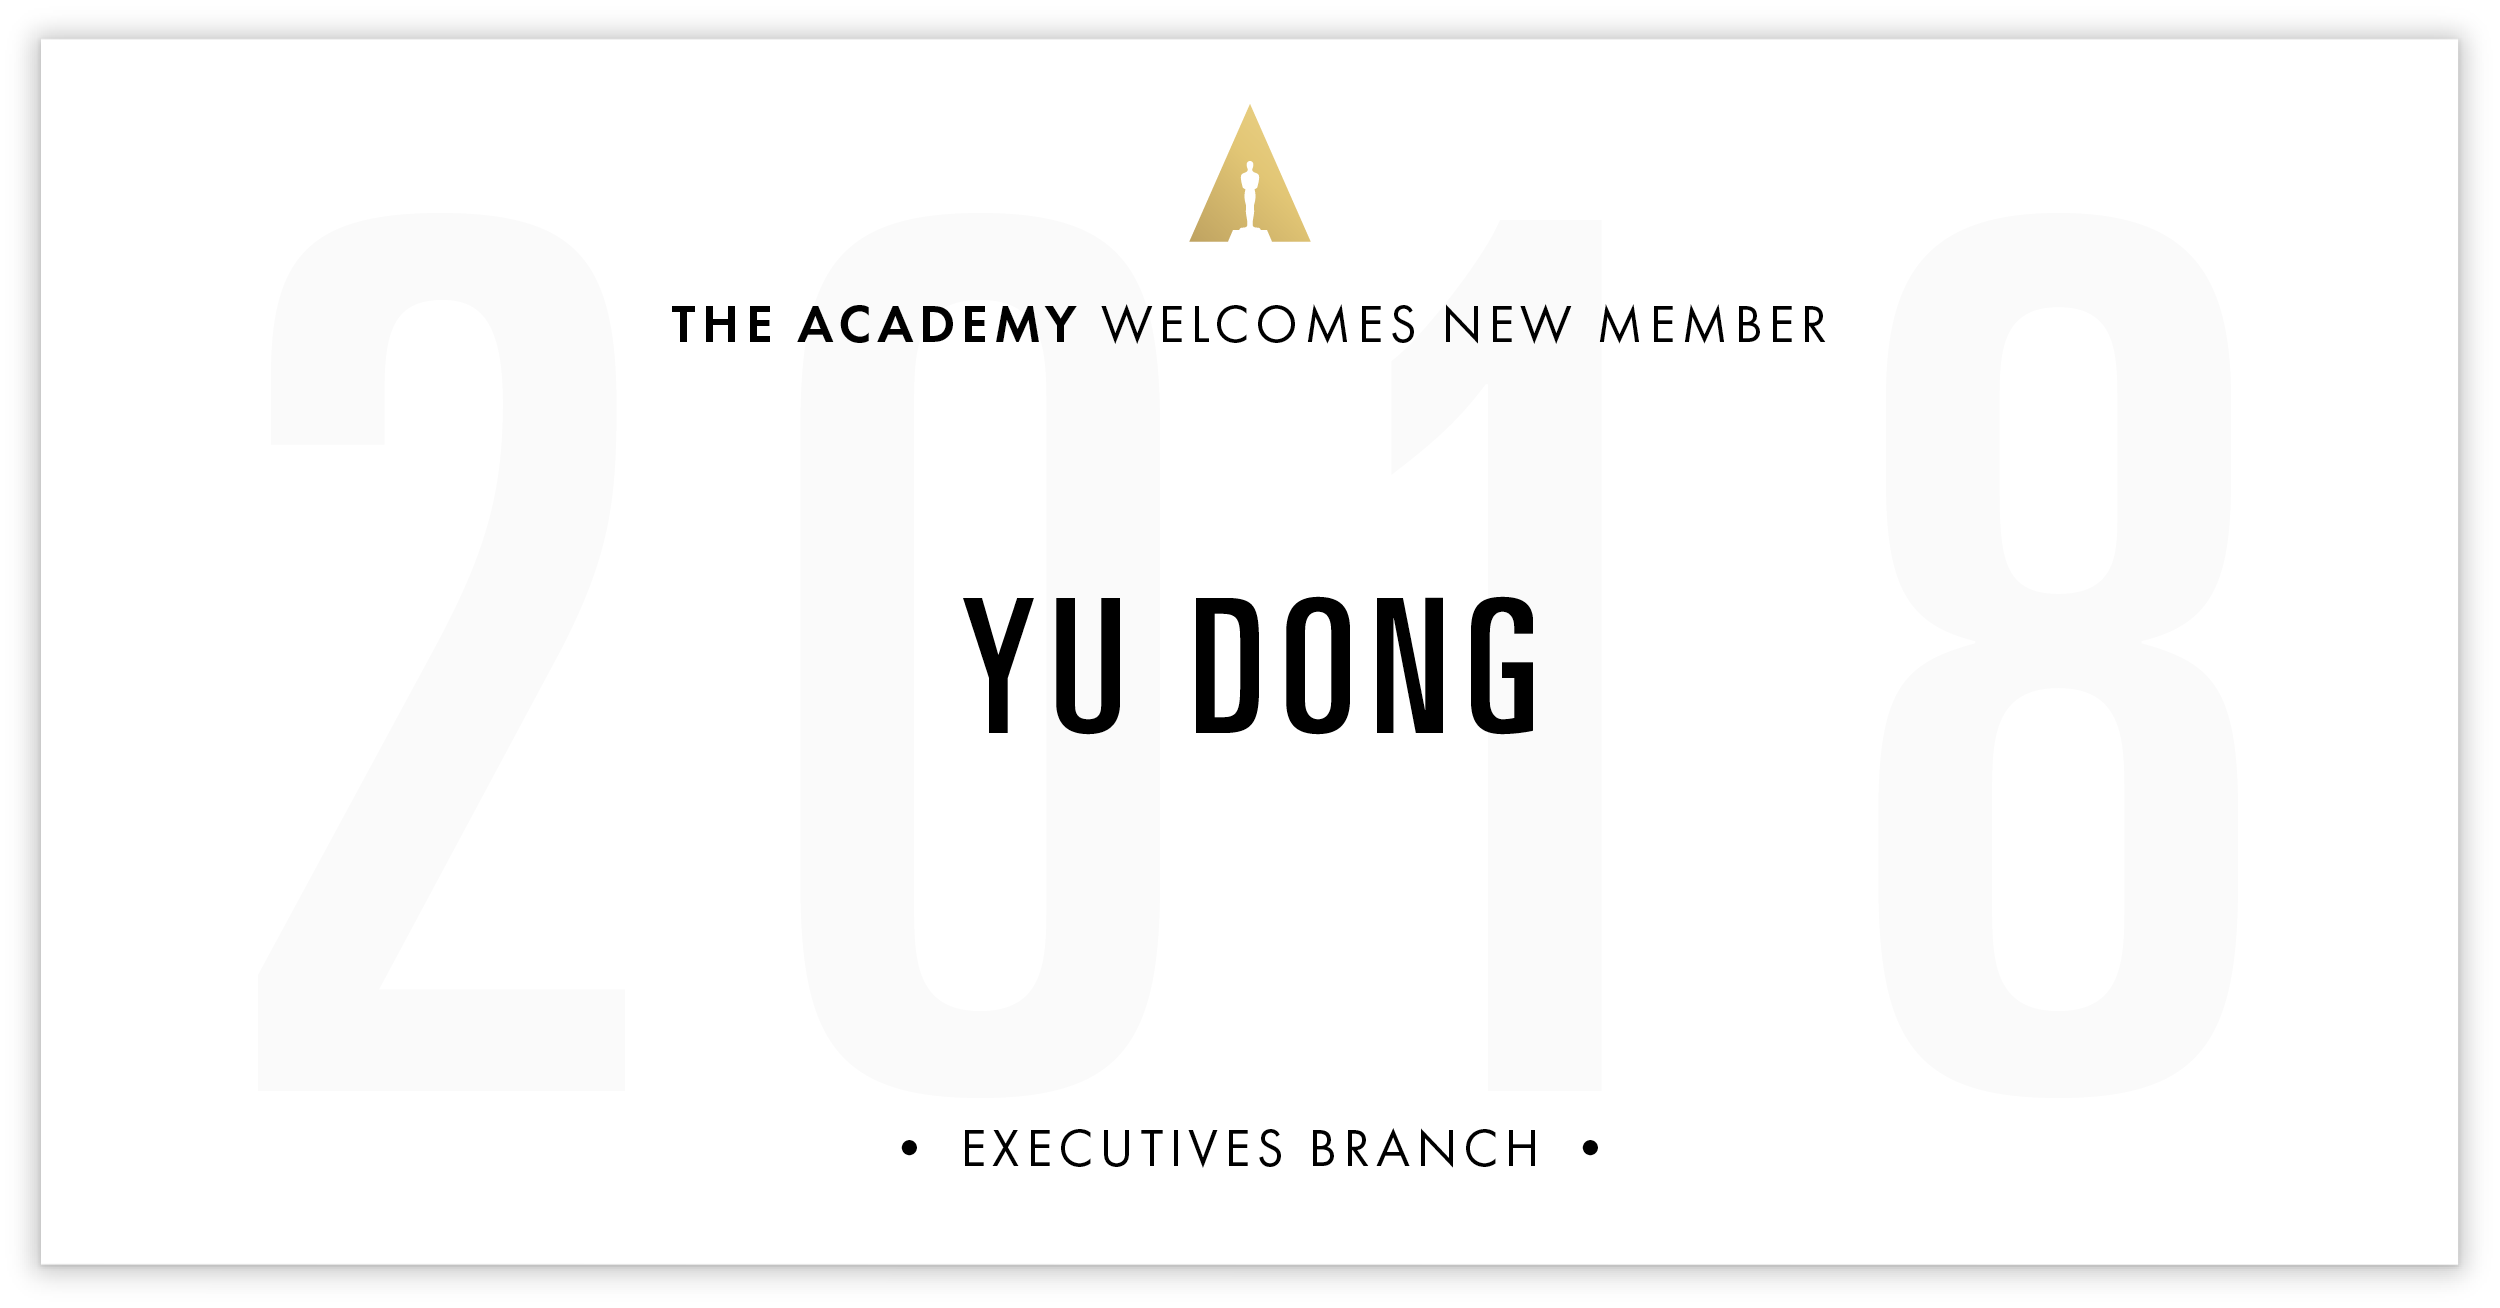 Yu Dong is invited!